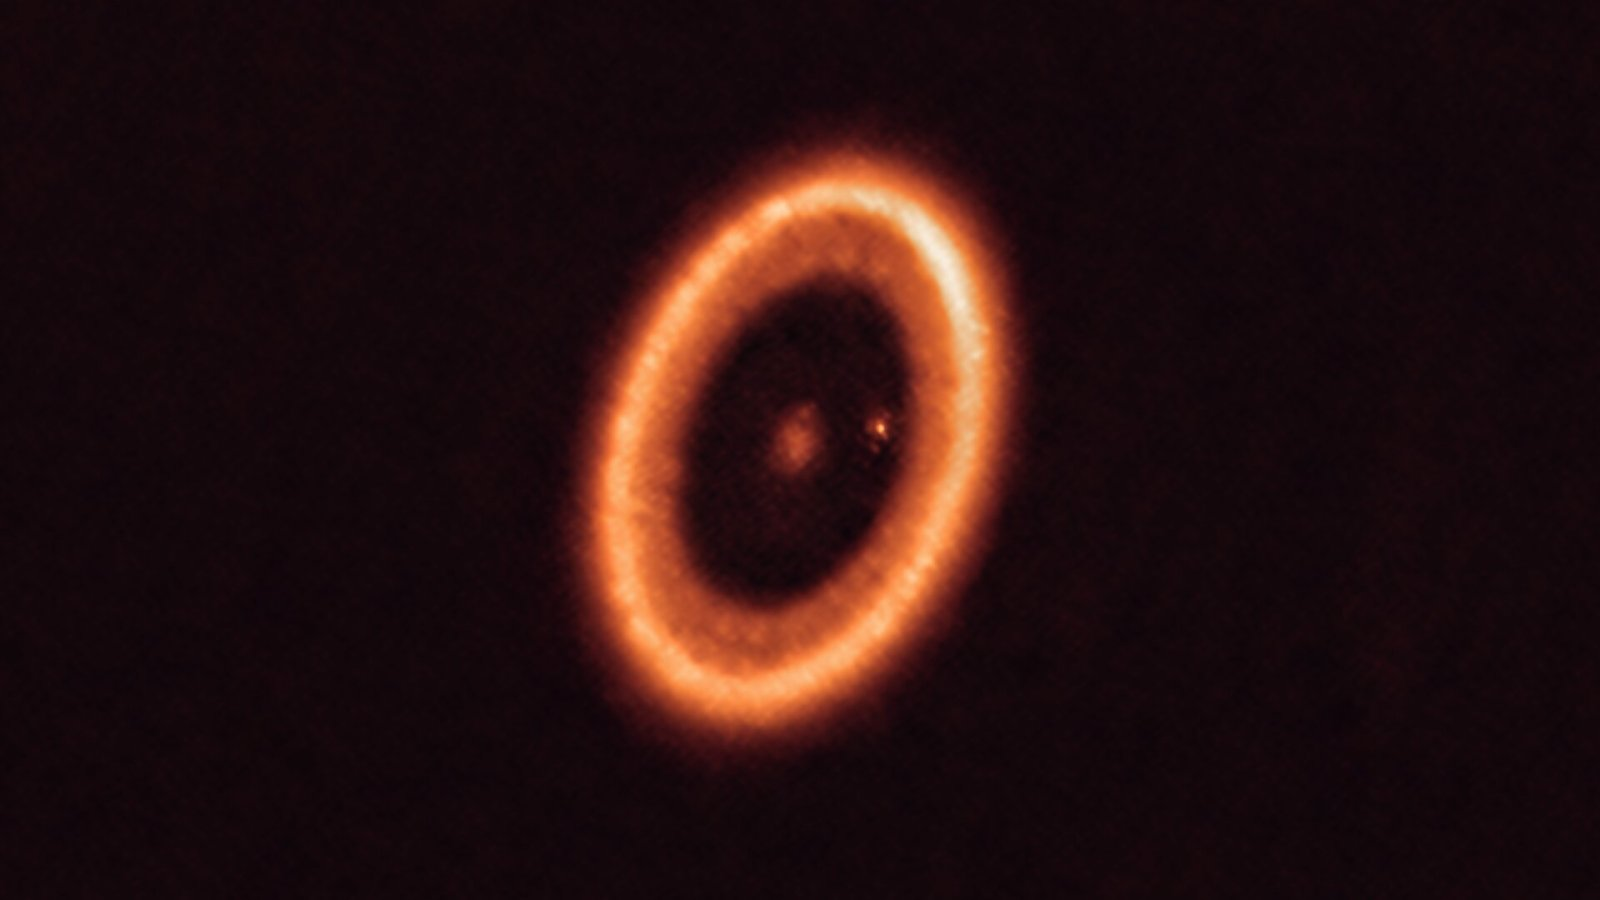 A solar system in the process of forming with a moon-forming disc around an exoplanet